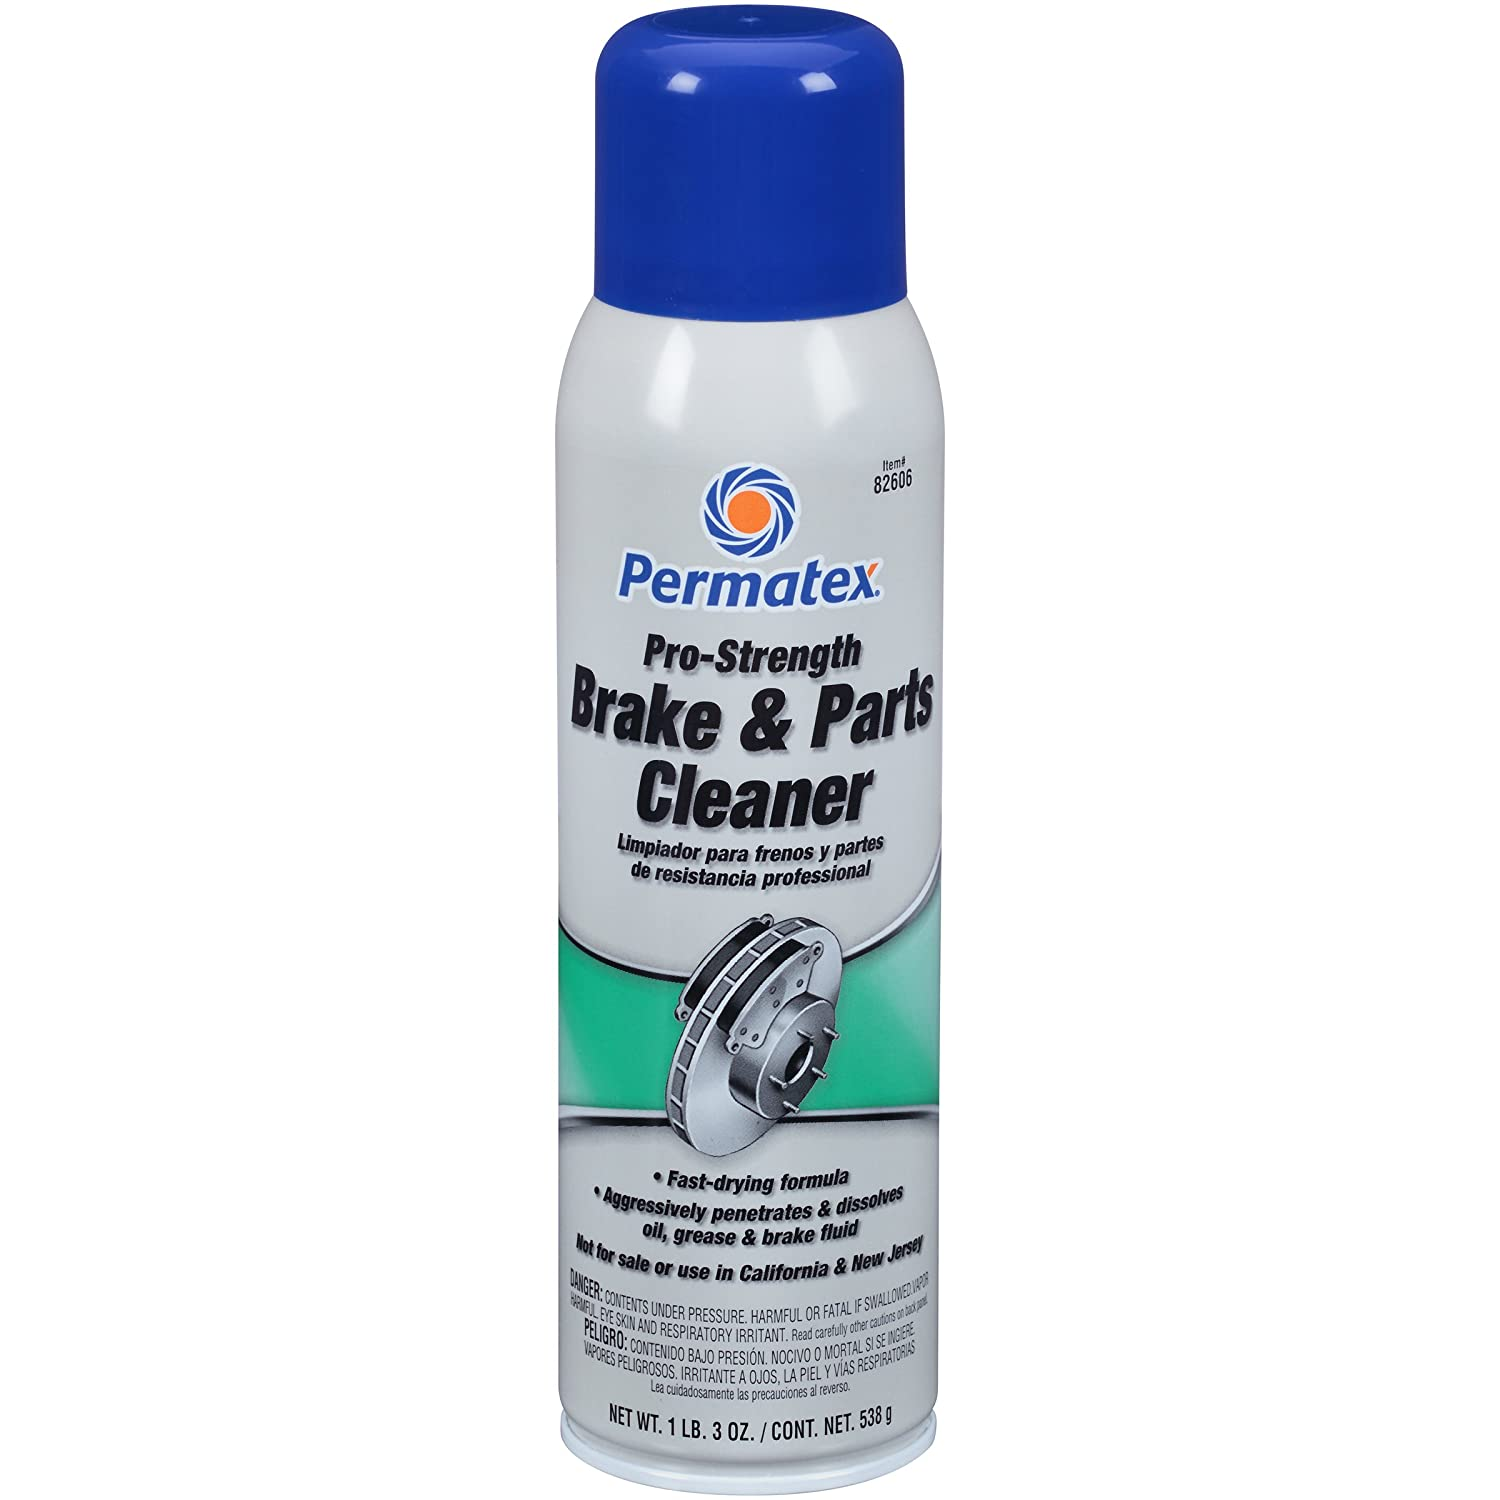 Permatex 82606 Pro Strength Brake and Parts Cleaner, 19 oz Aerosol Can